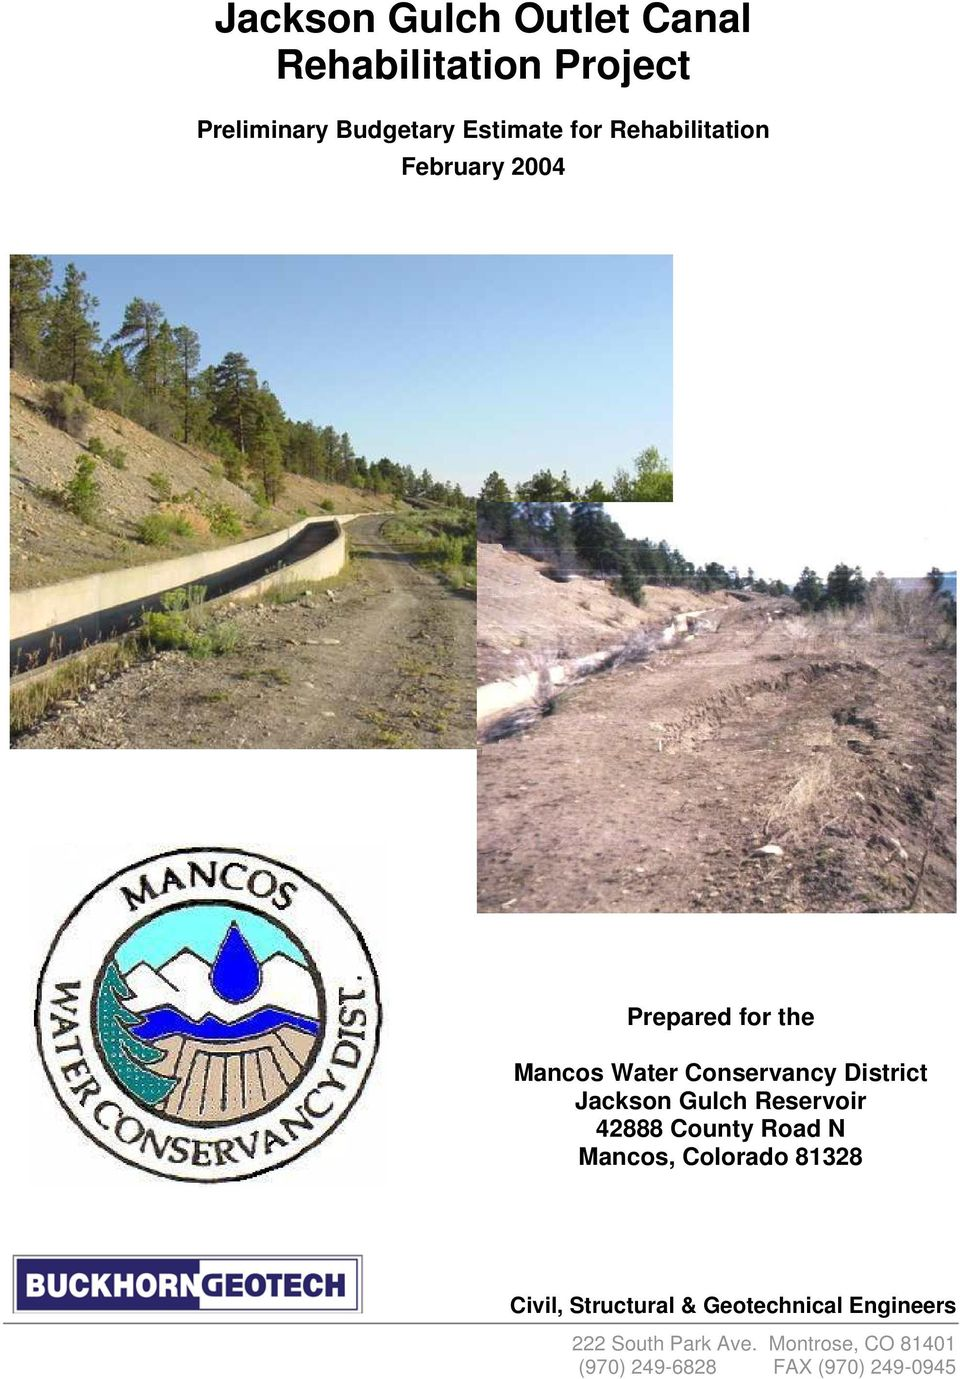 Jackson Gulch Reservoir 42888 County Road N Mancos, Colorado 81328 Civil, Structural &